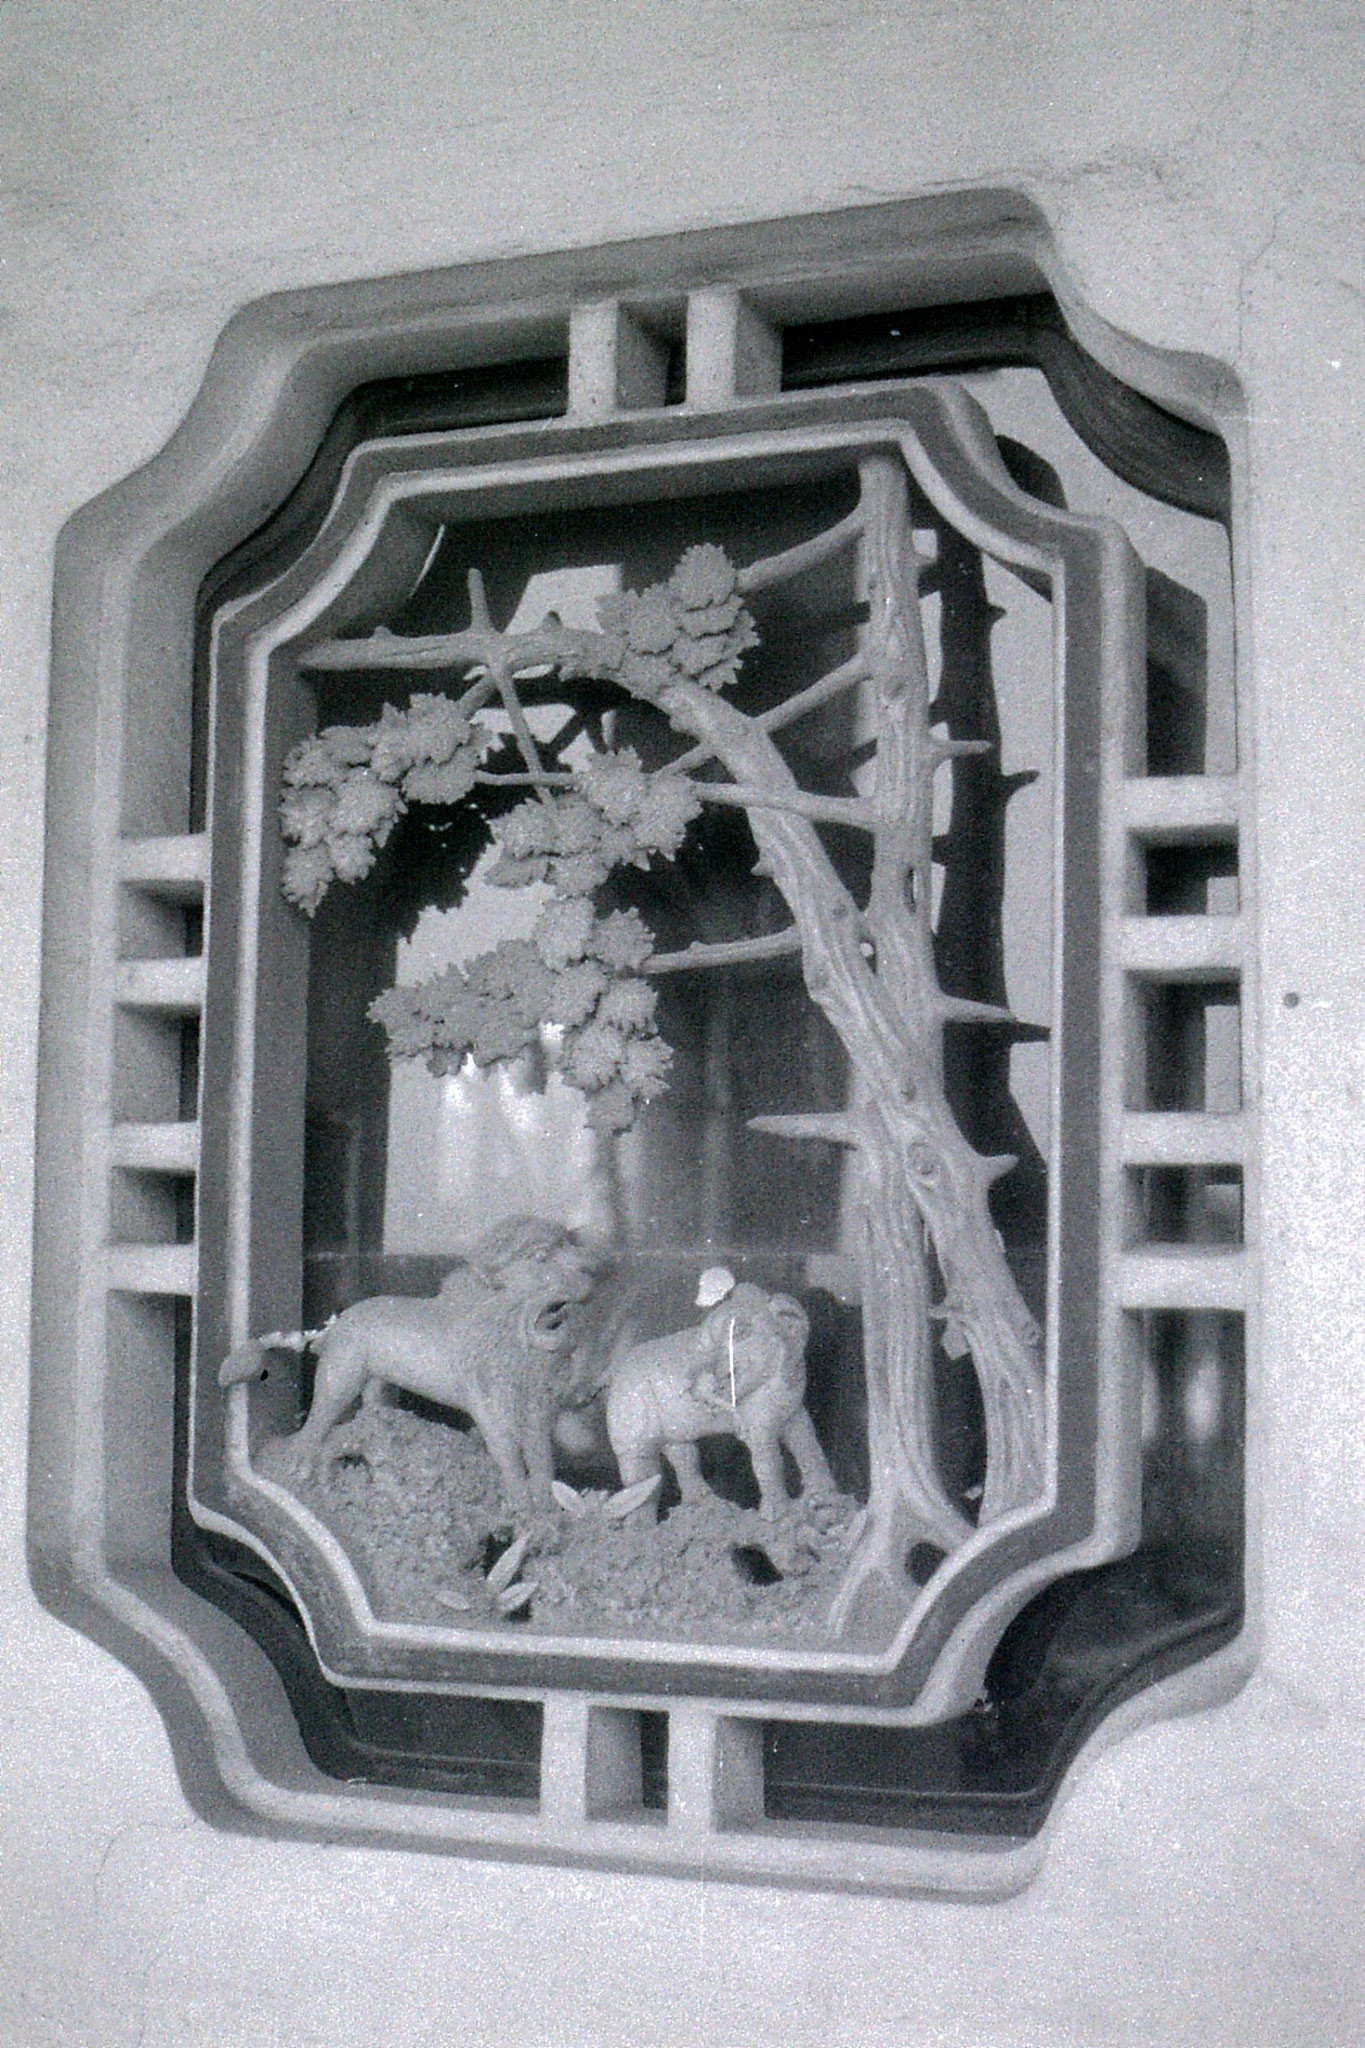 27/6/1989: 25: Shaoxing, window carving